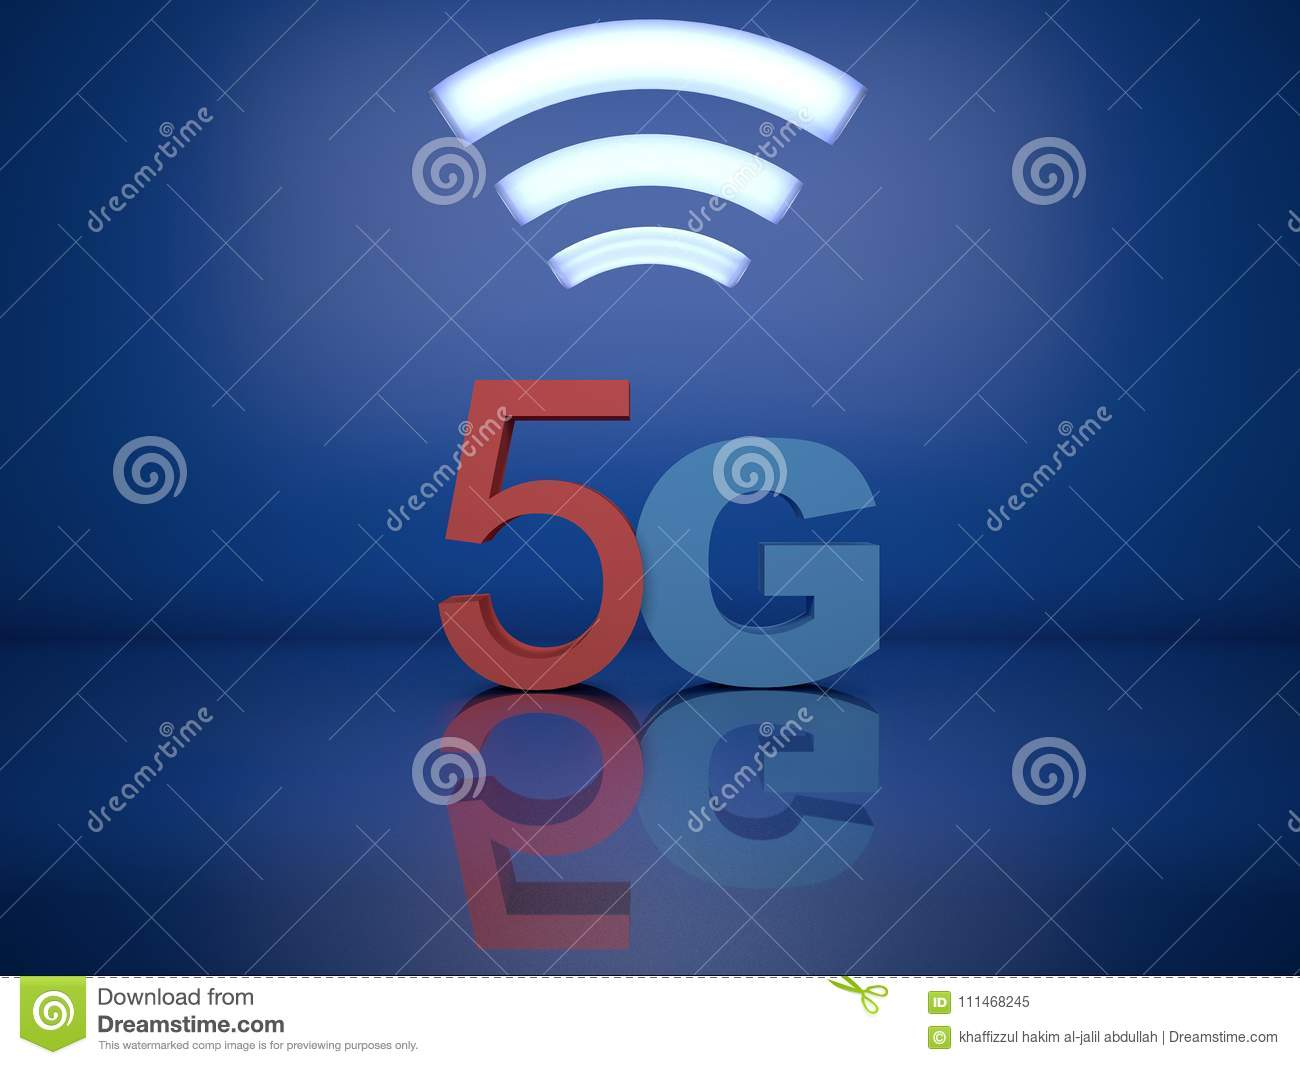 Upcoming 5g mobile technology